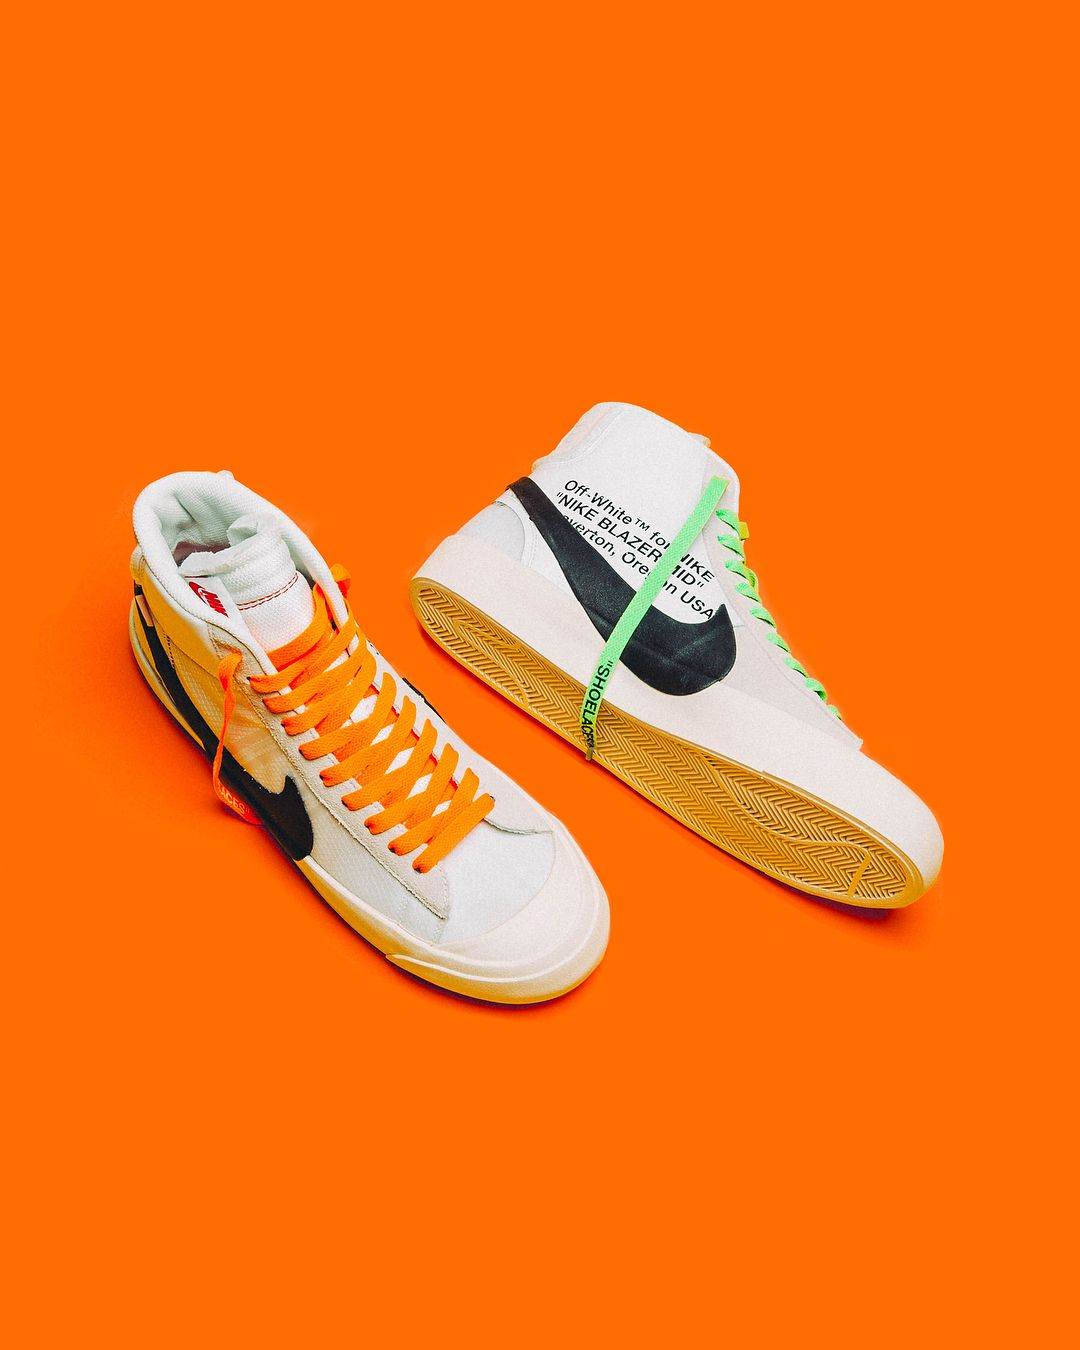 OFF WHITE x NIKE BLAZER MID | Sneakers men fashion, Stylish